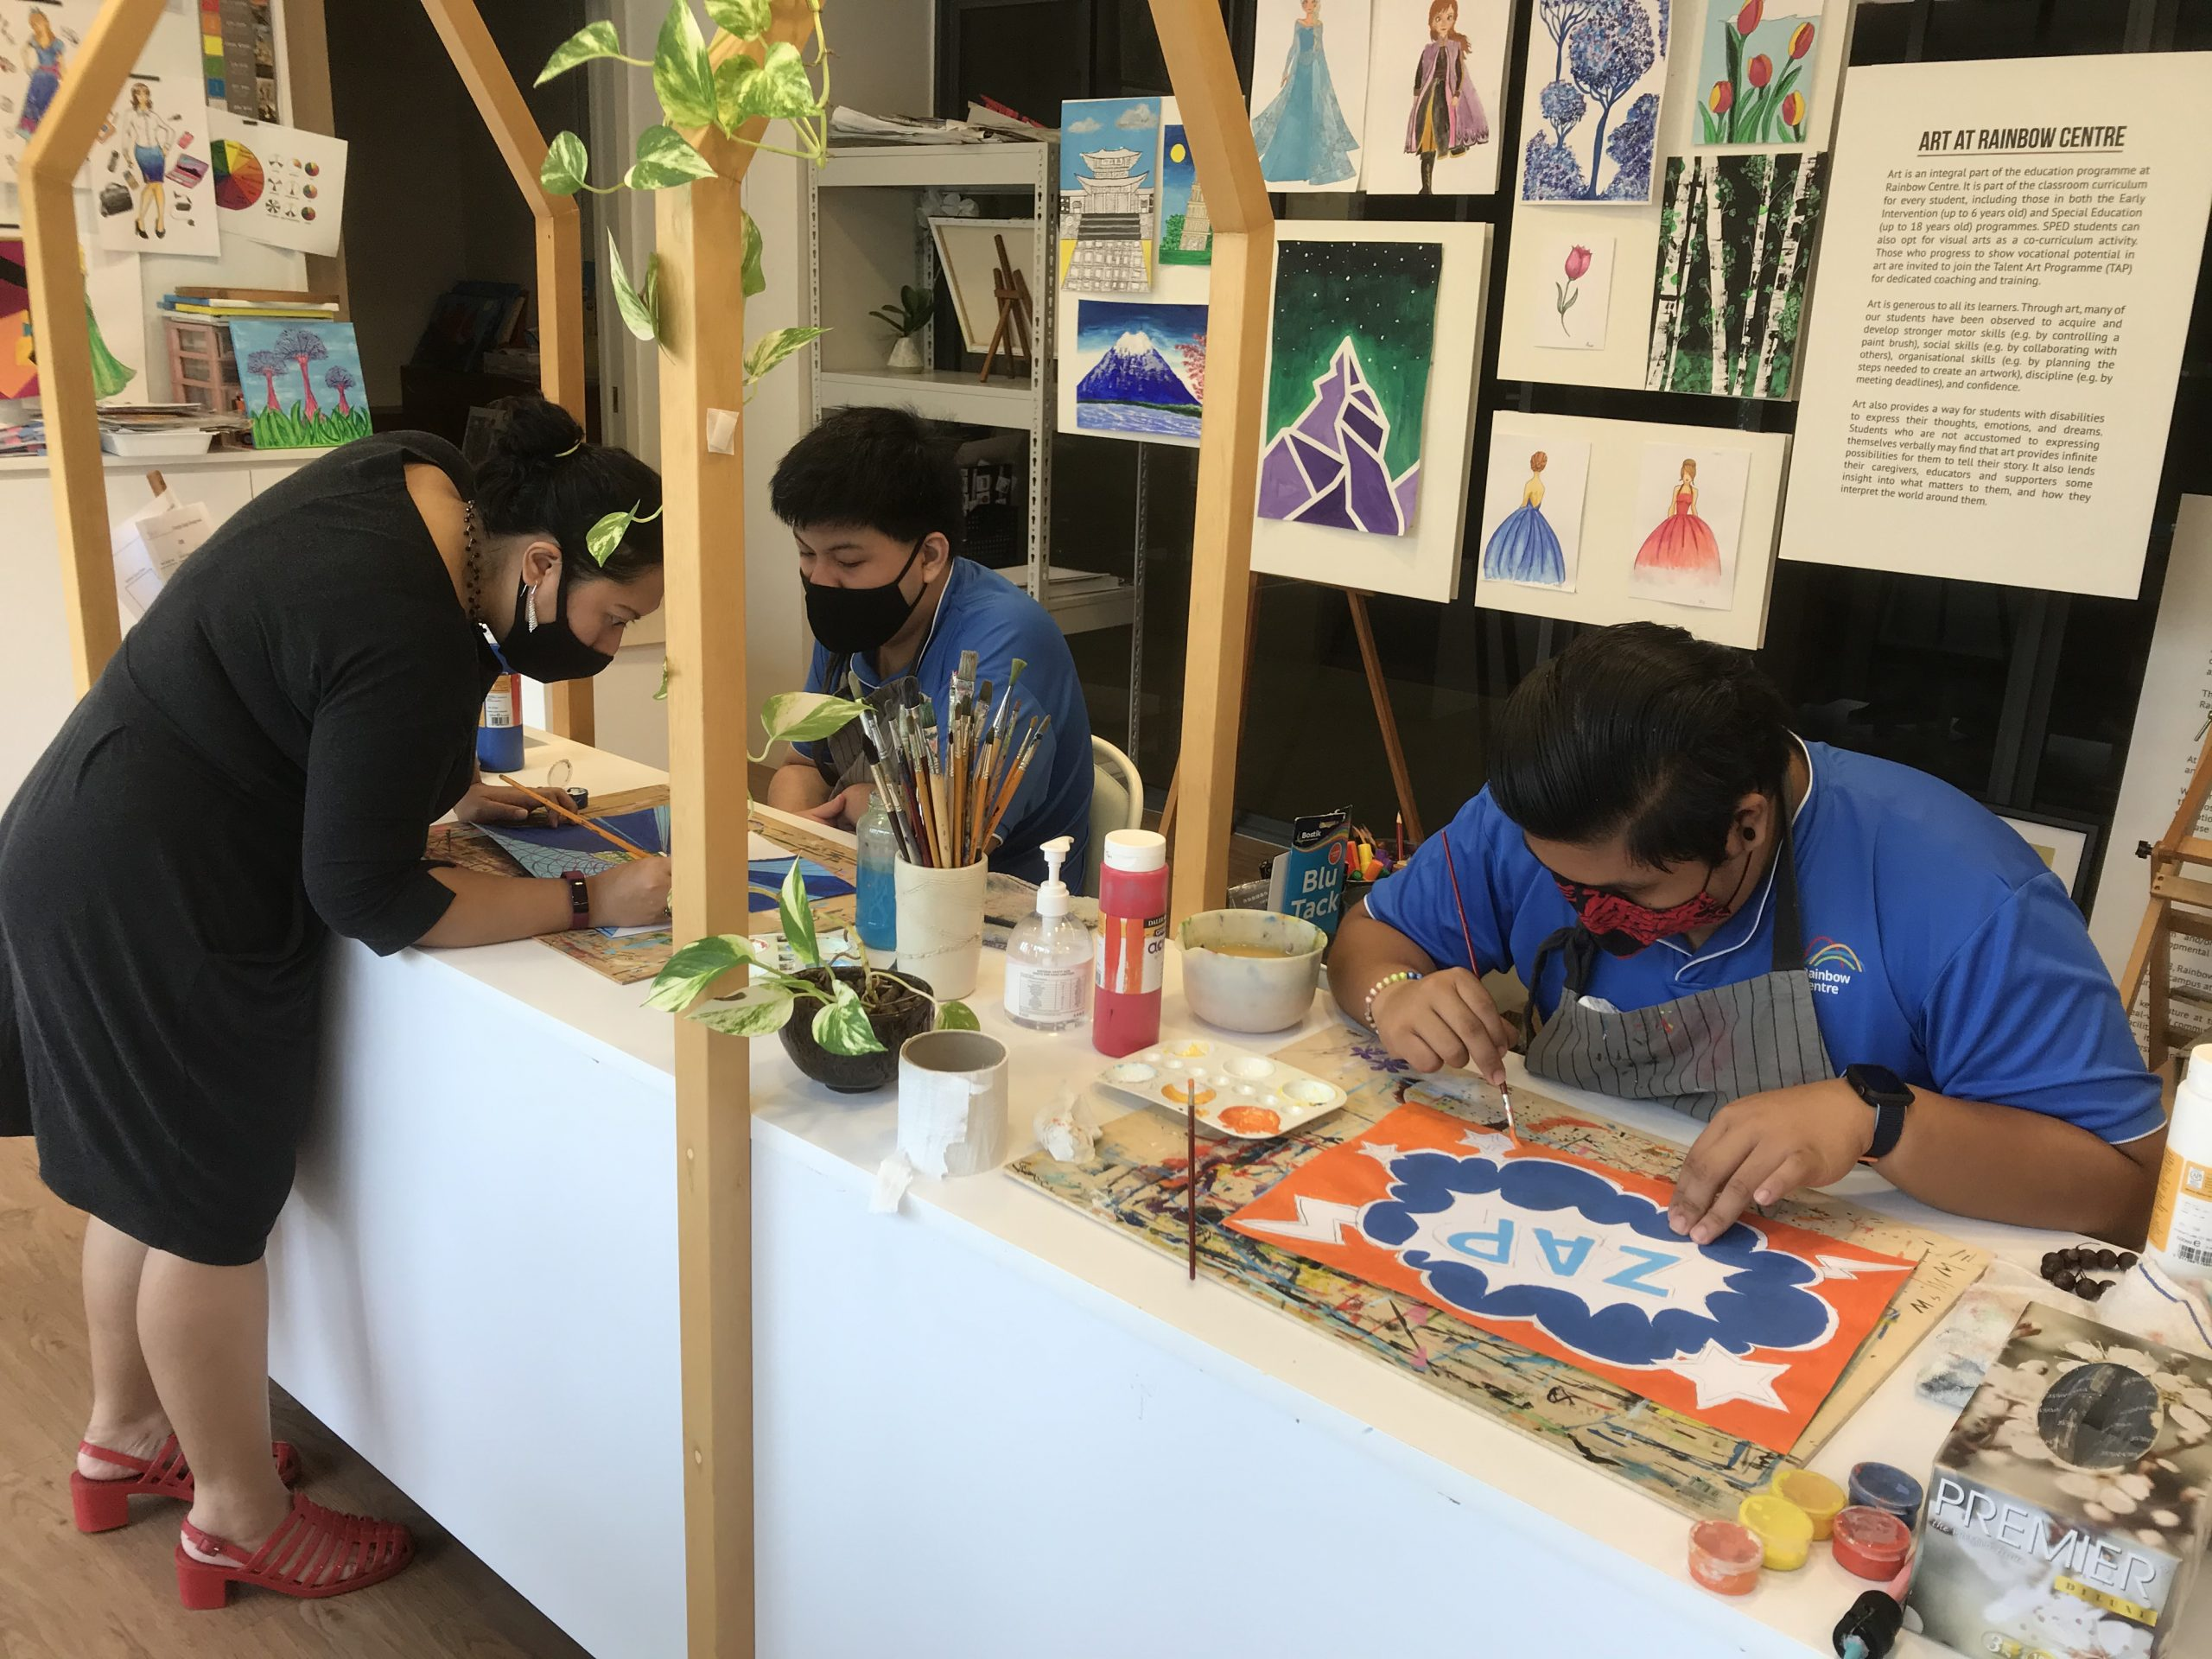 Artability apprentices working on their creations in our Canvas studio.